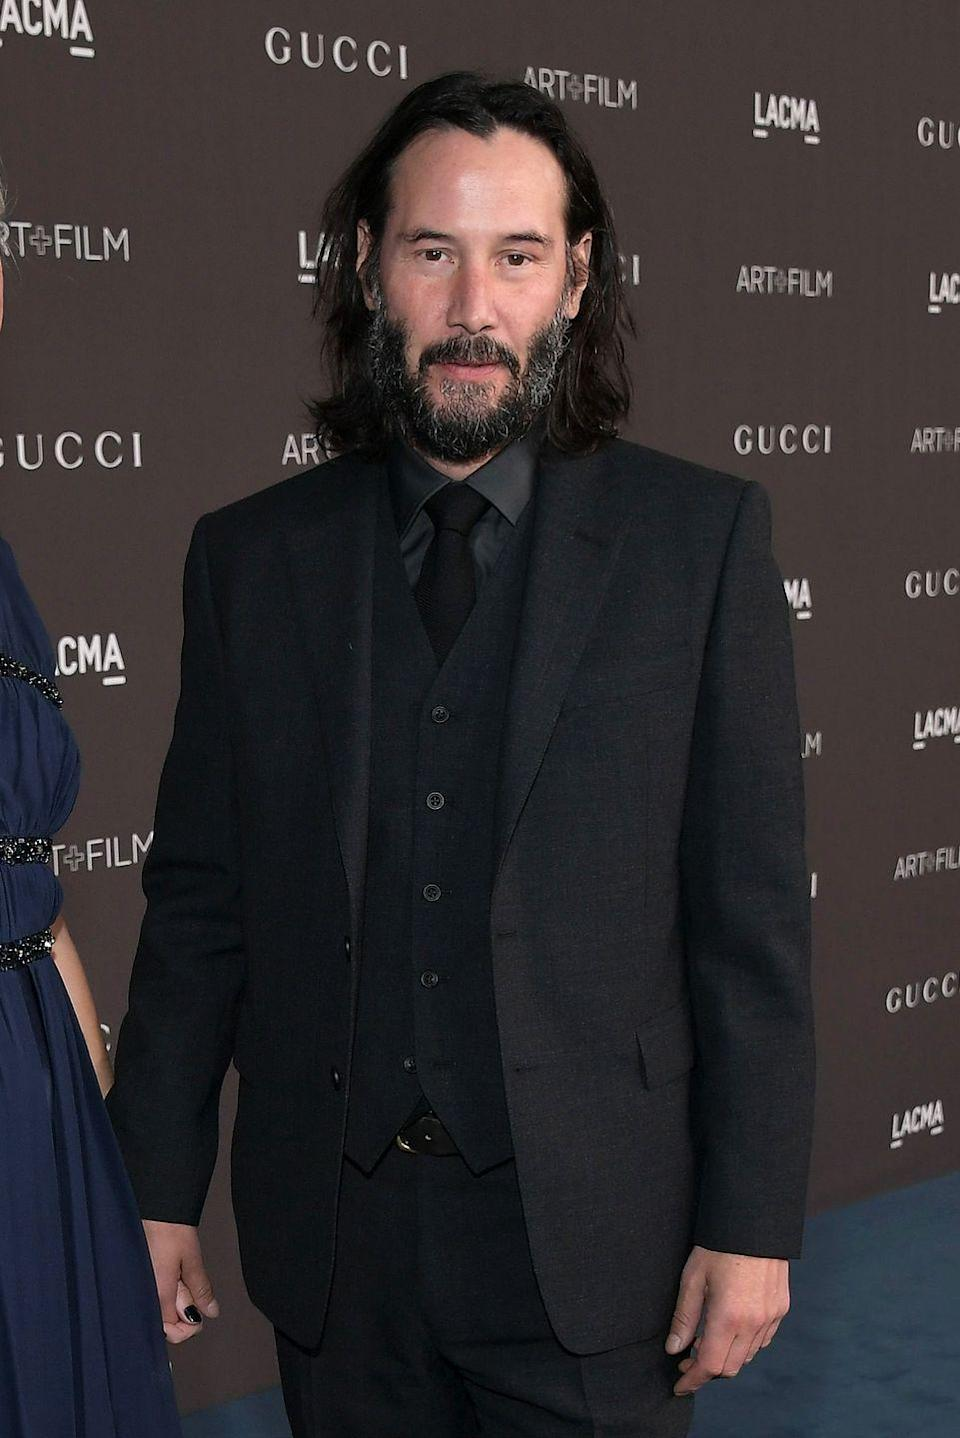 <p>As of late, Keanu's known for starring in action films. It would be nice to see him kick back and do some comedy once in a while.</p>